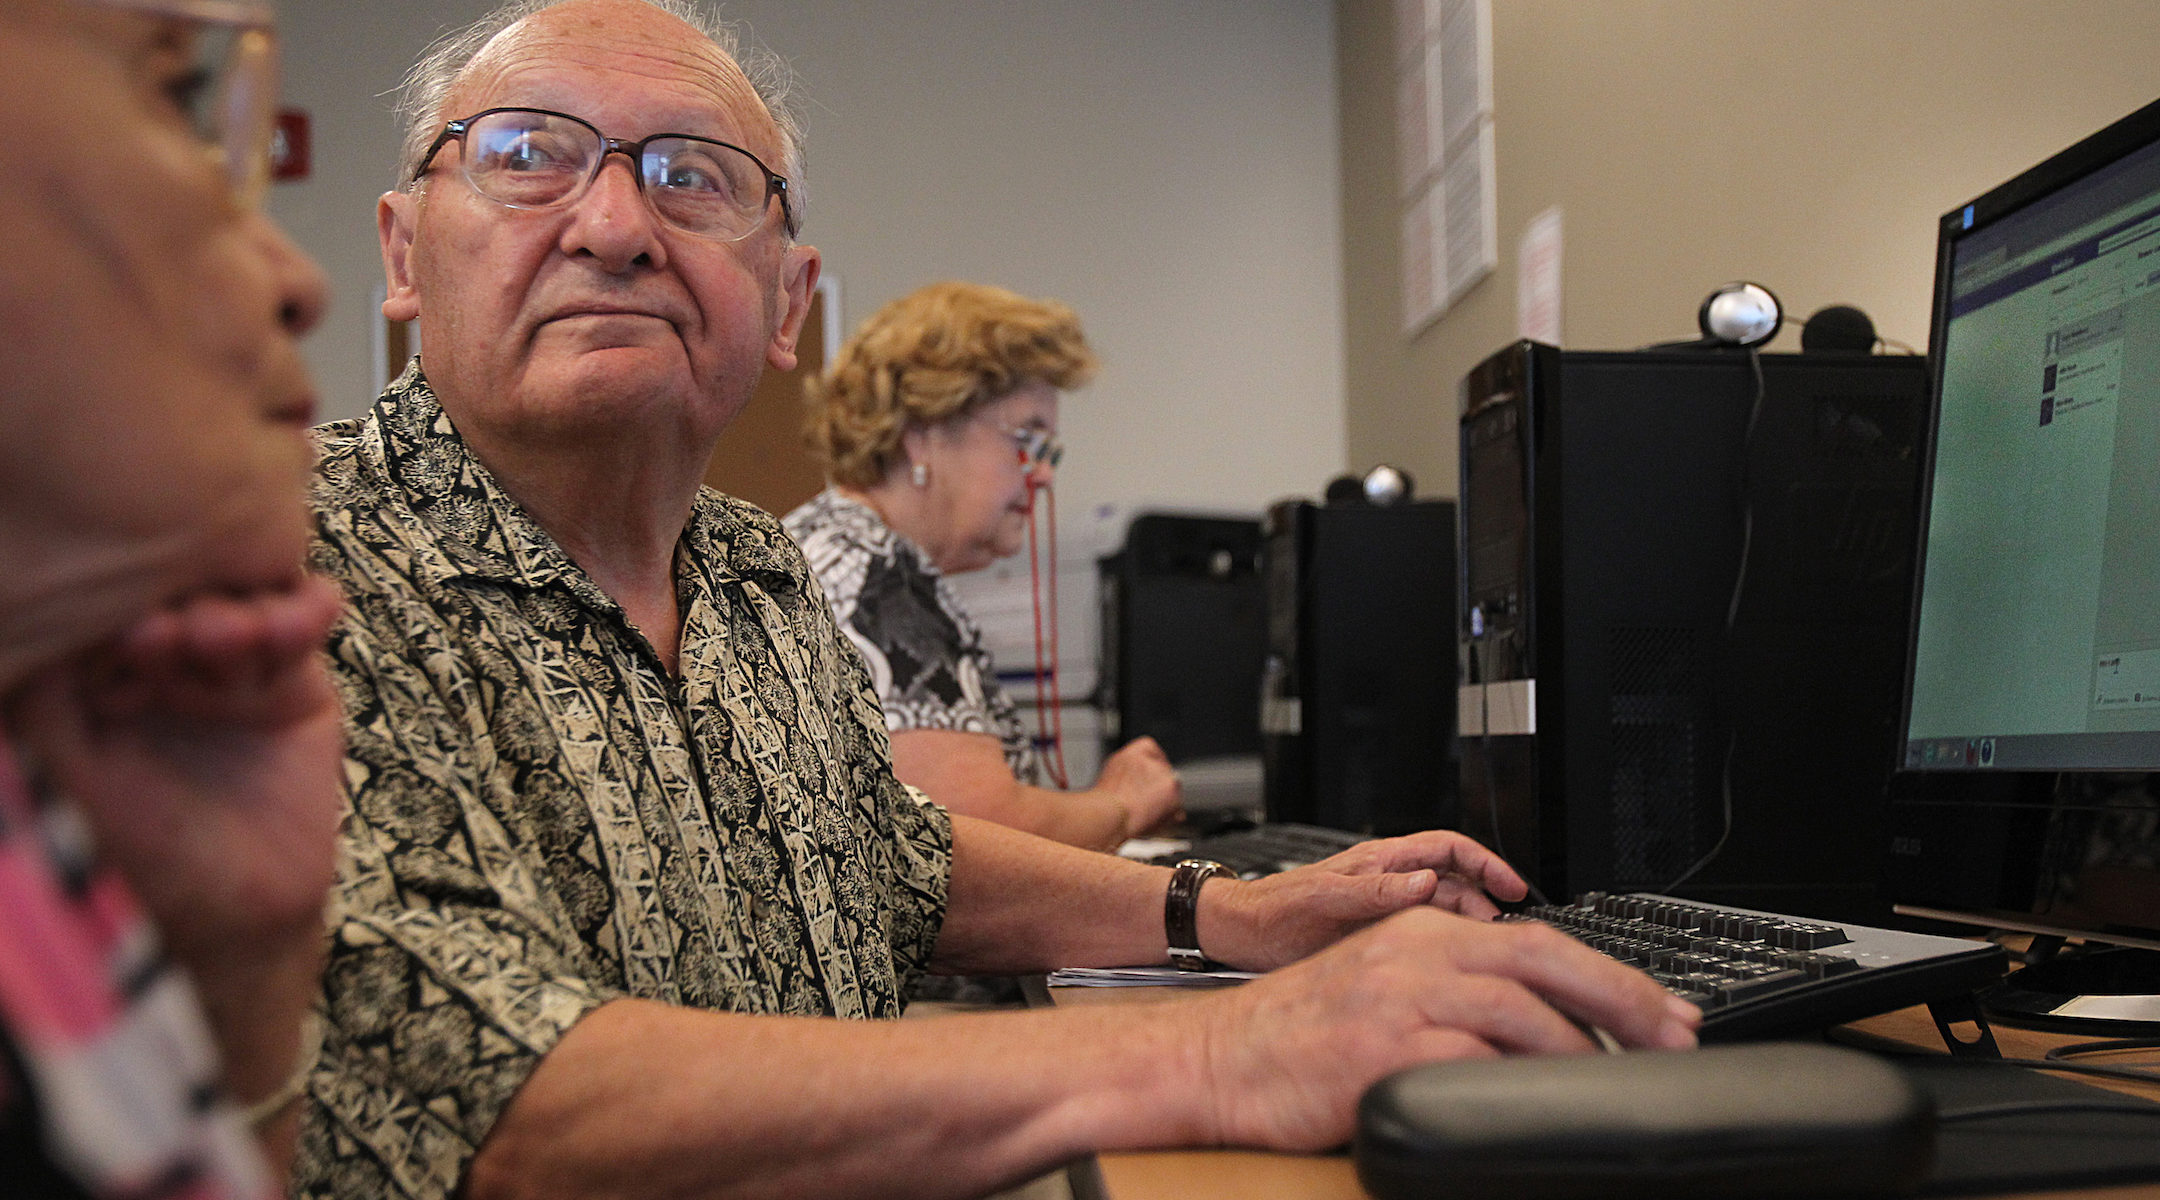 A class for elderly residents to learn Facebook at the Jewish Community Housing for the Elderly in Massachusetts. (Suzanne Kreiter/Getty Images)